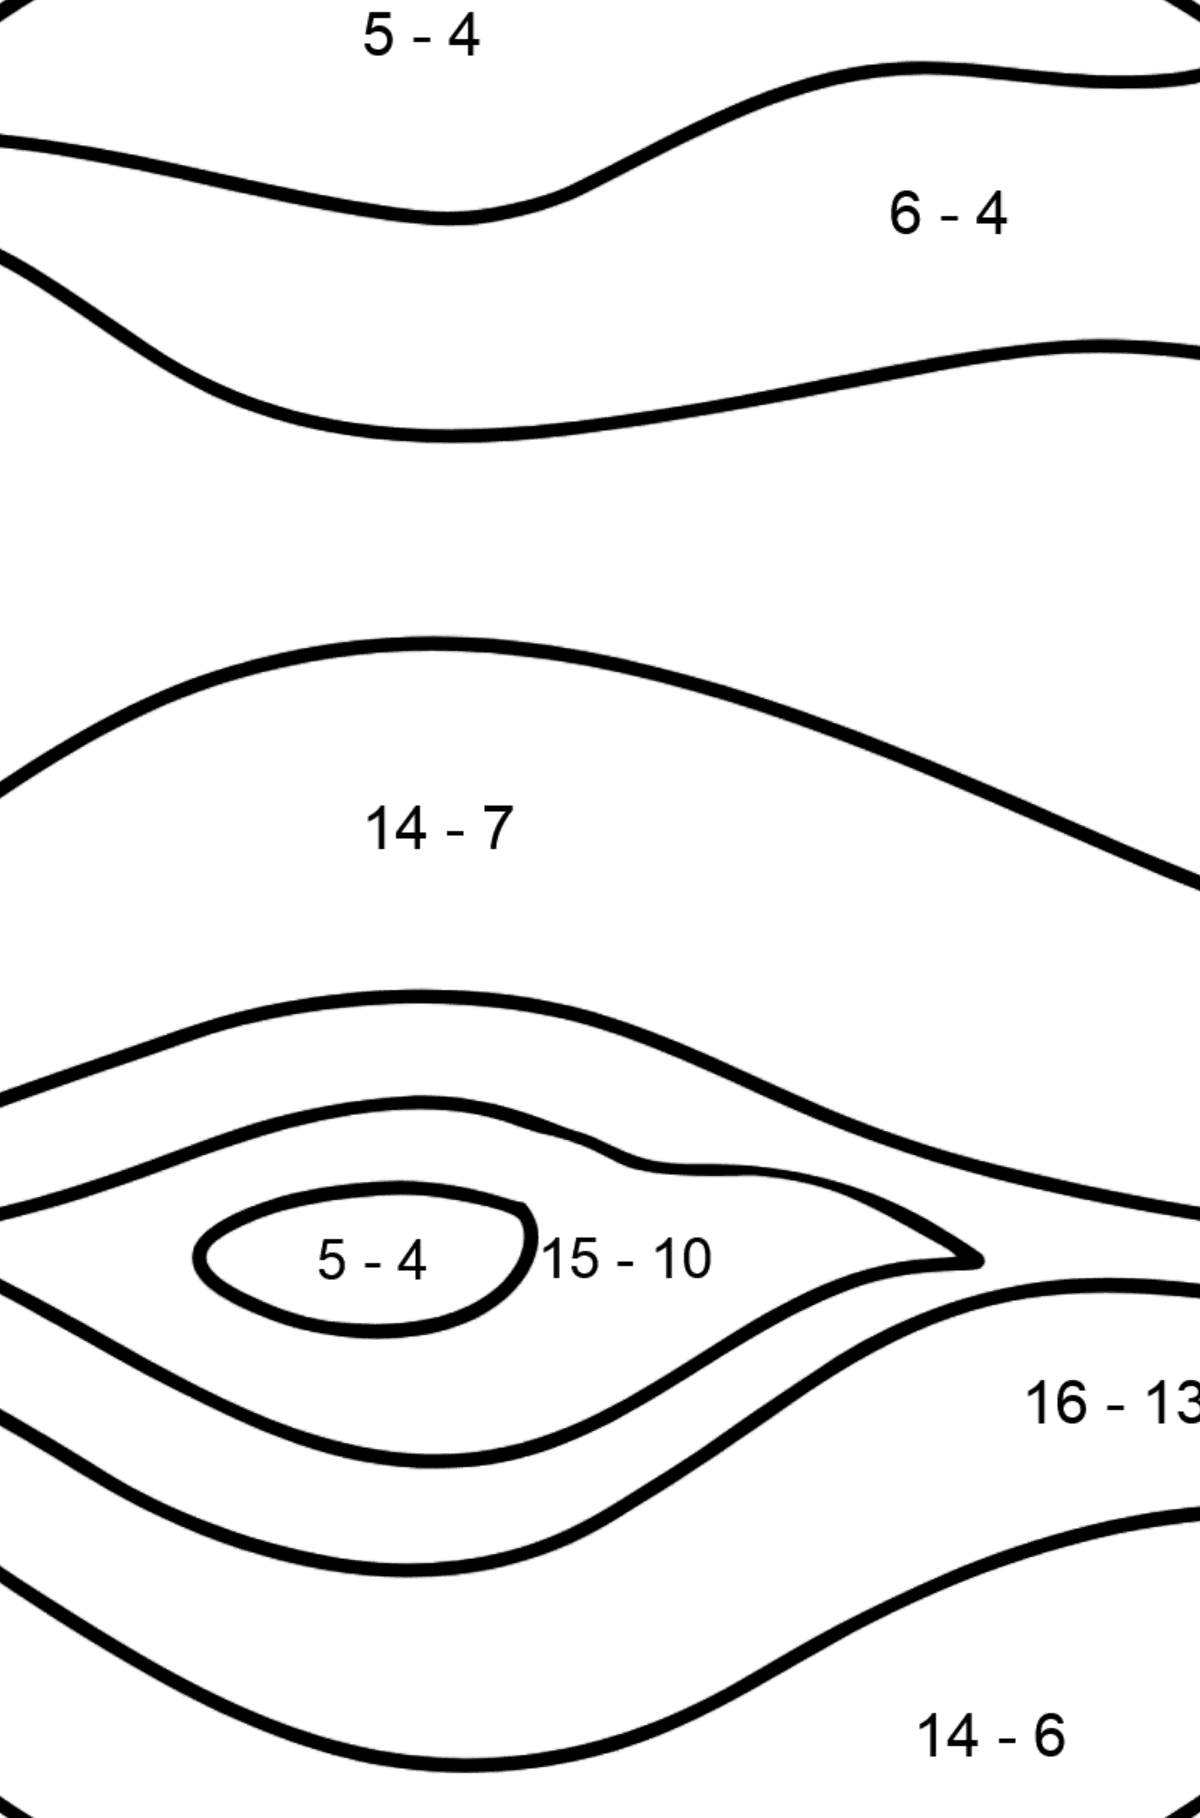 Jupiter coloring page - Math Coloring - Subtraction for Kids